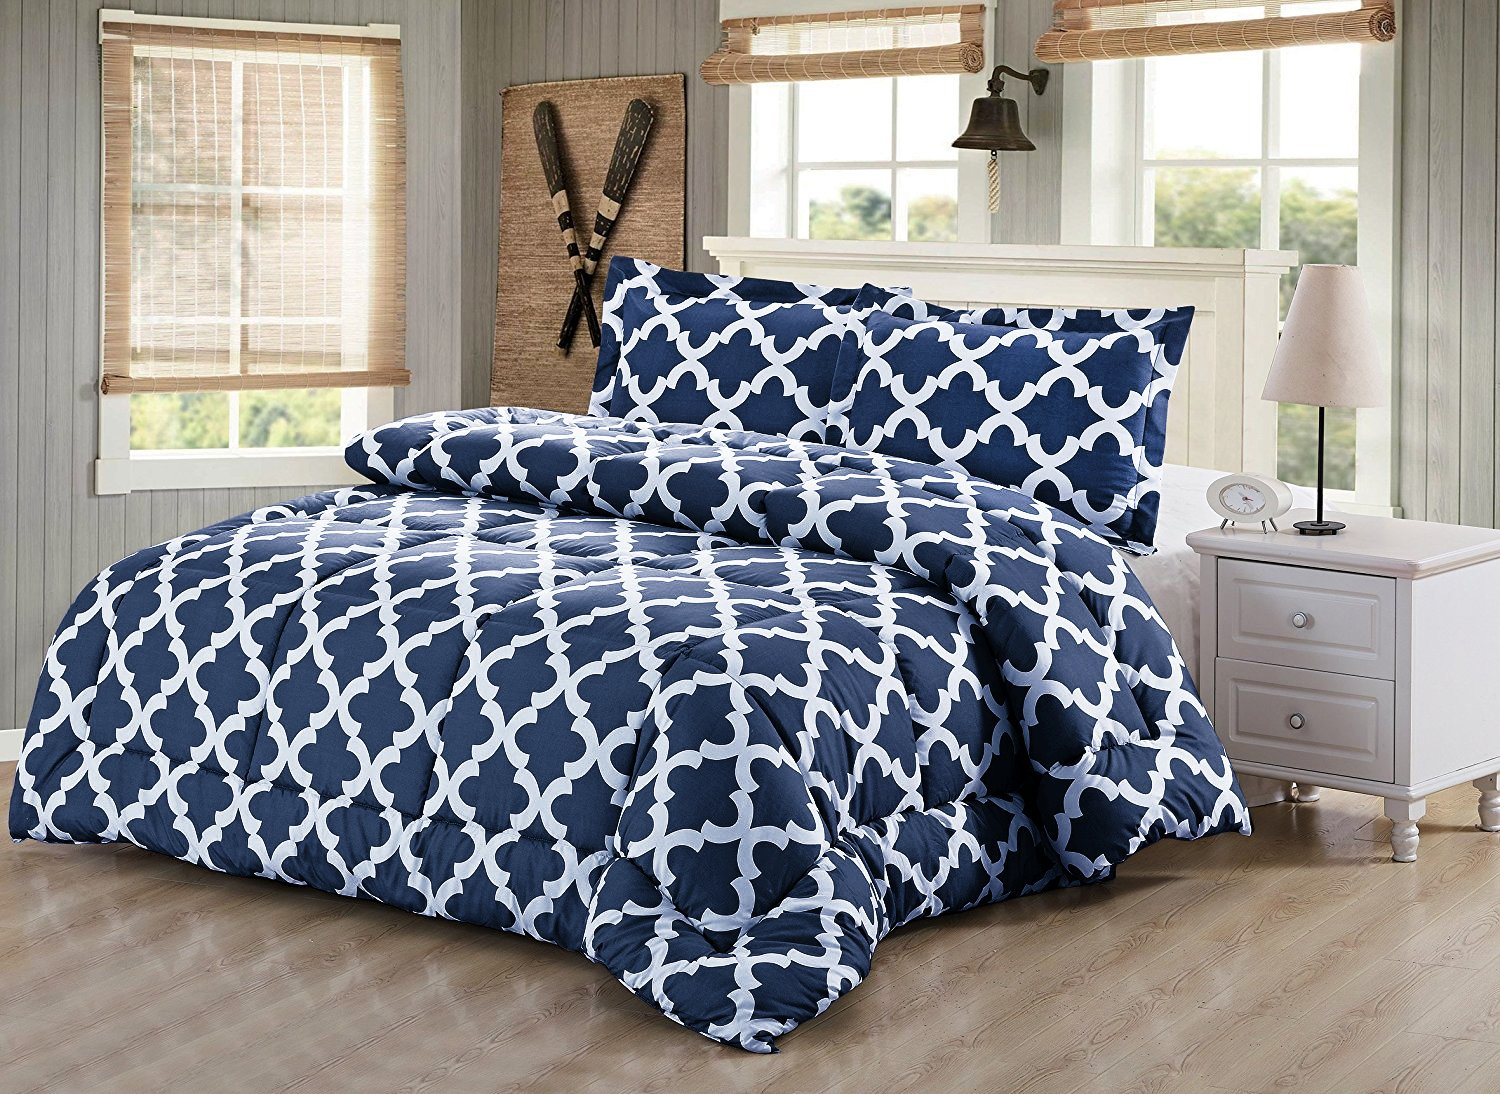 Printed Comforter Set Queen, Navy